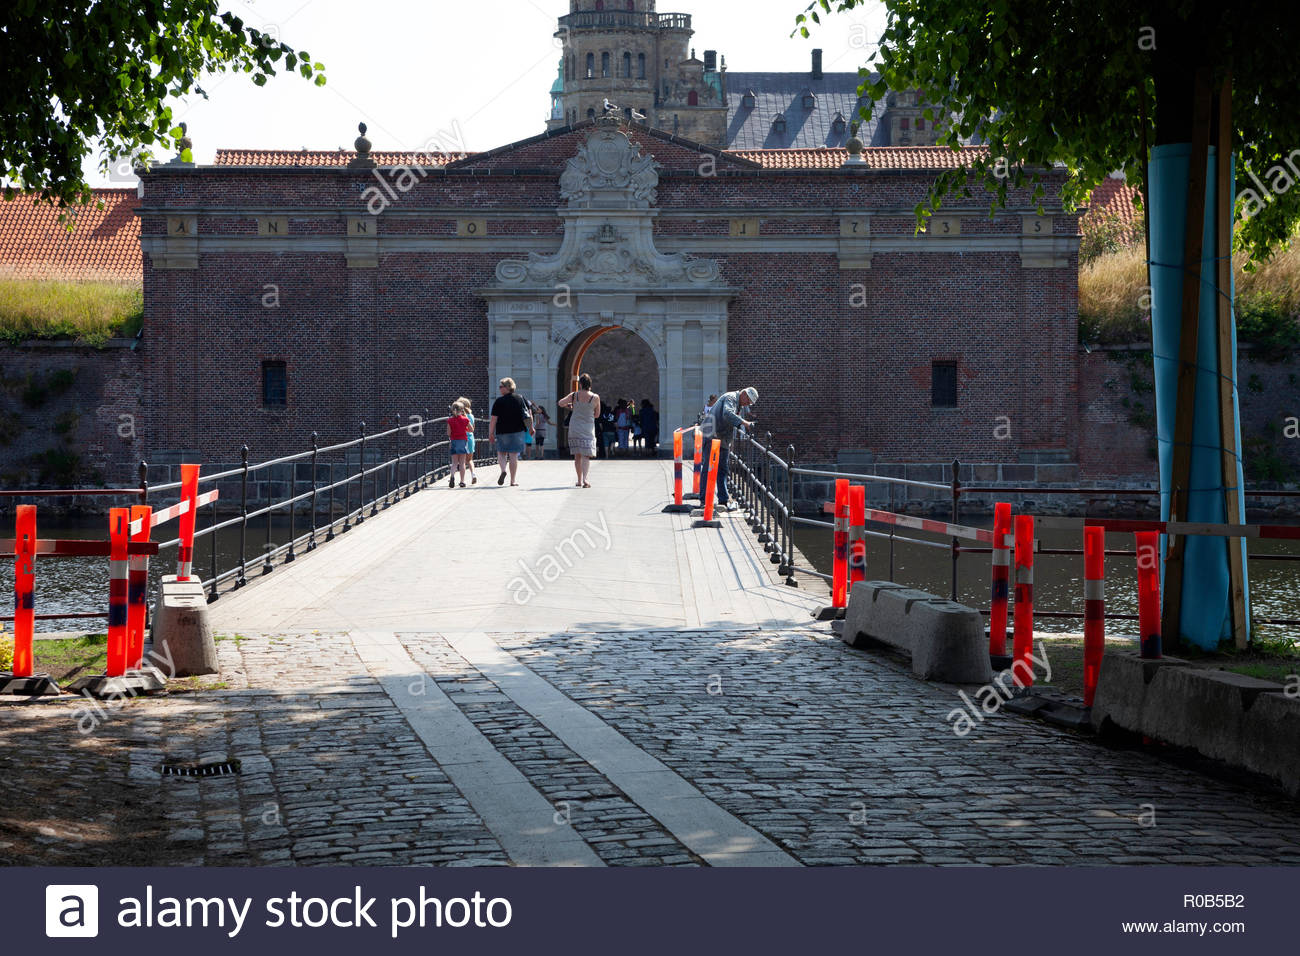 Entrance to castle of Kronborg - Stock Image